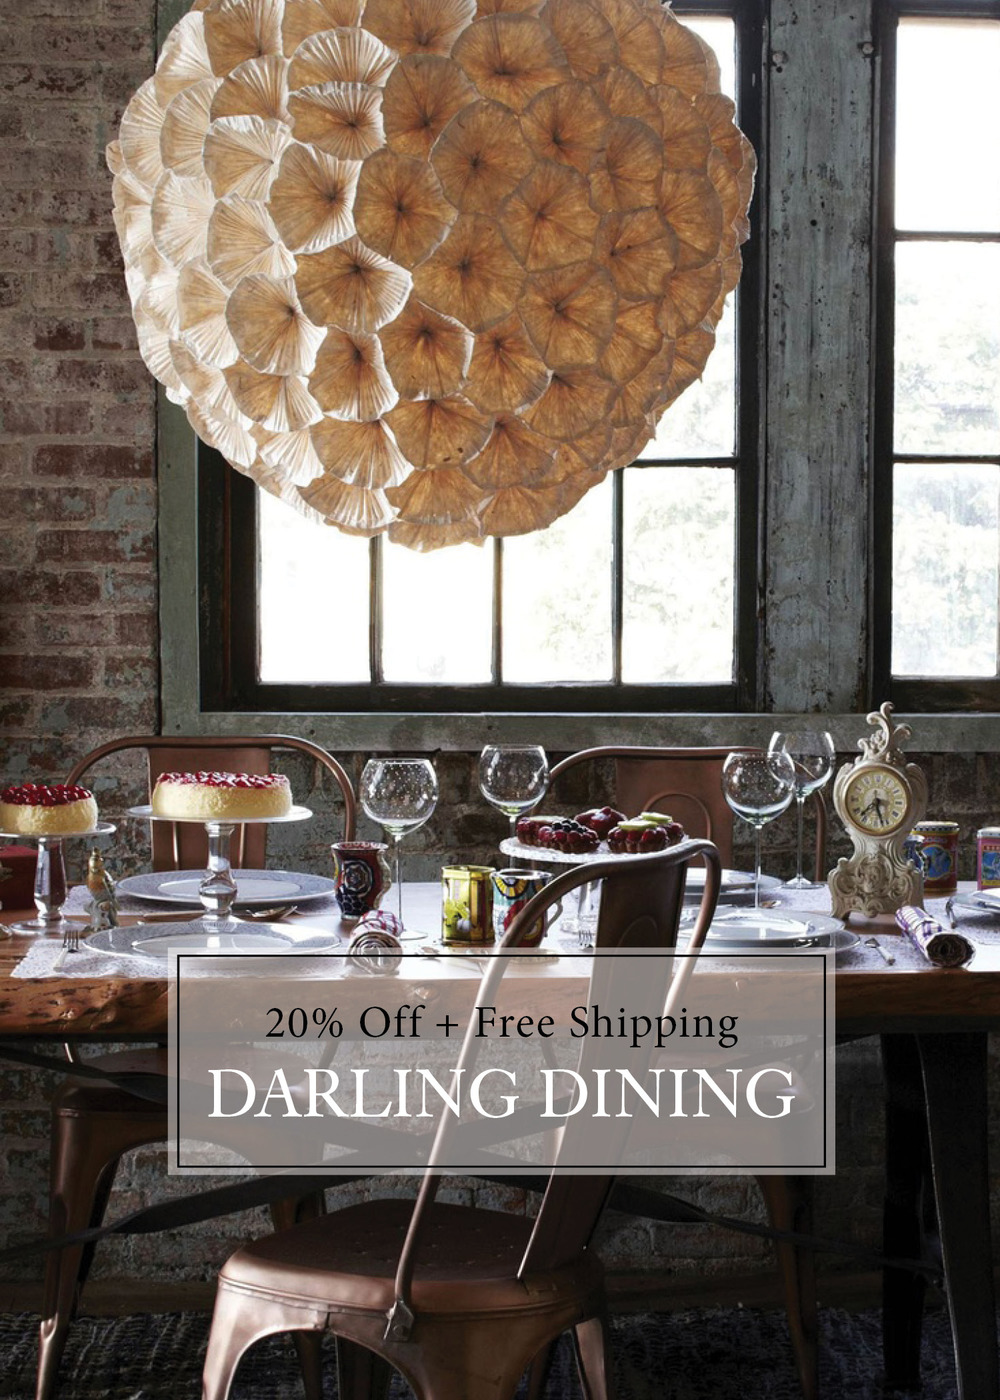 DARLING DINING.jpg